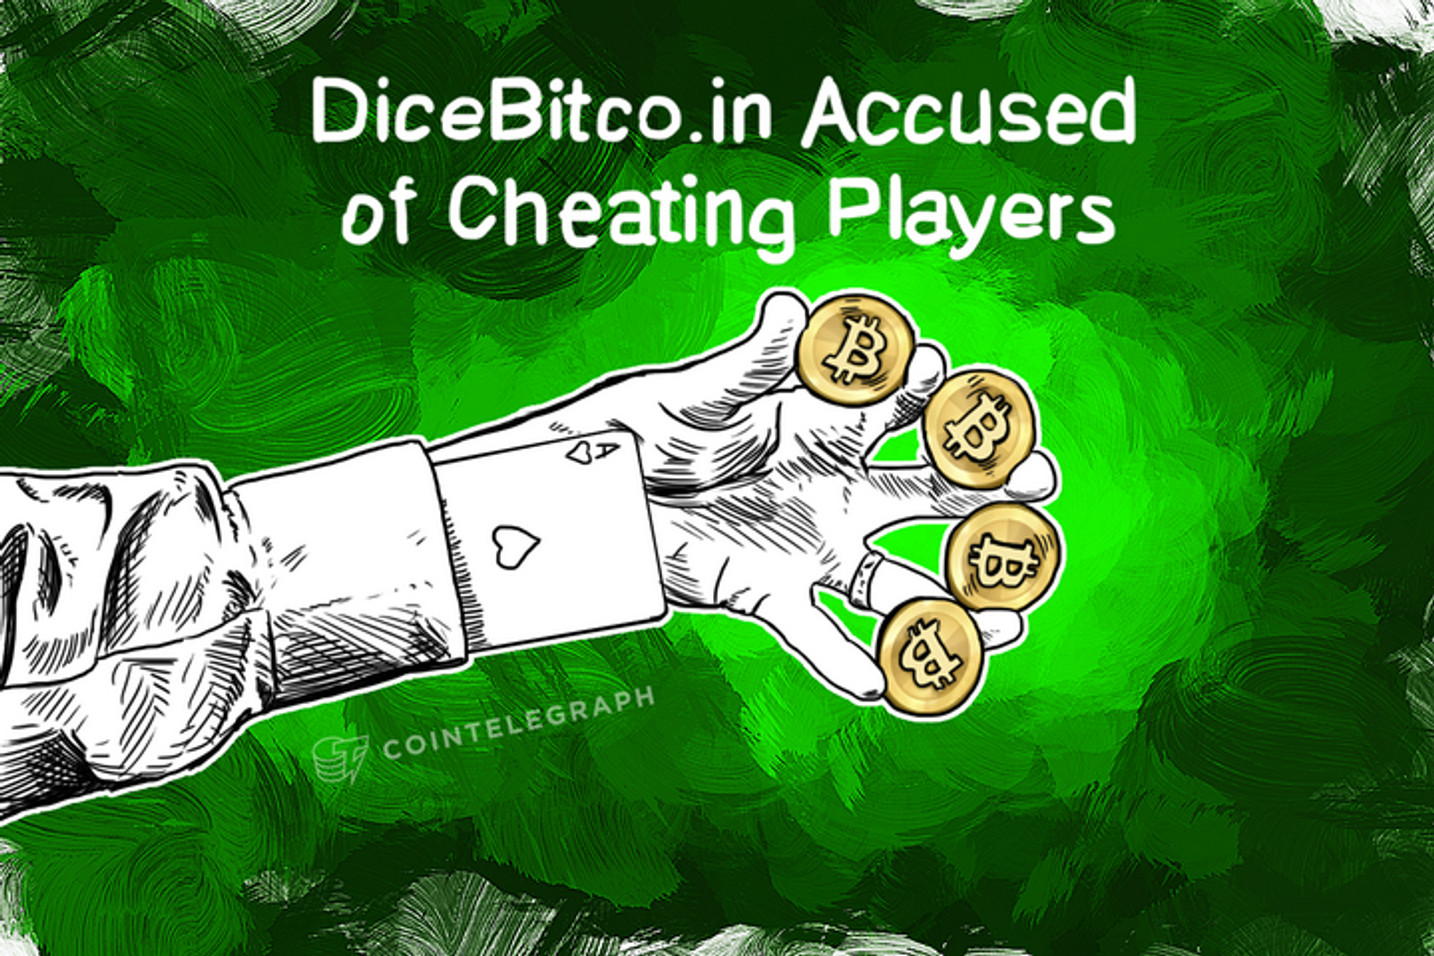 DiceBitco.in Accused of Cheating Players